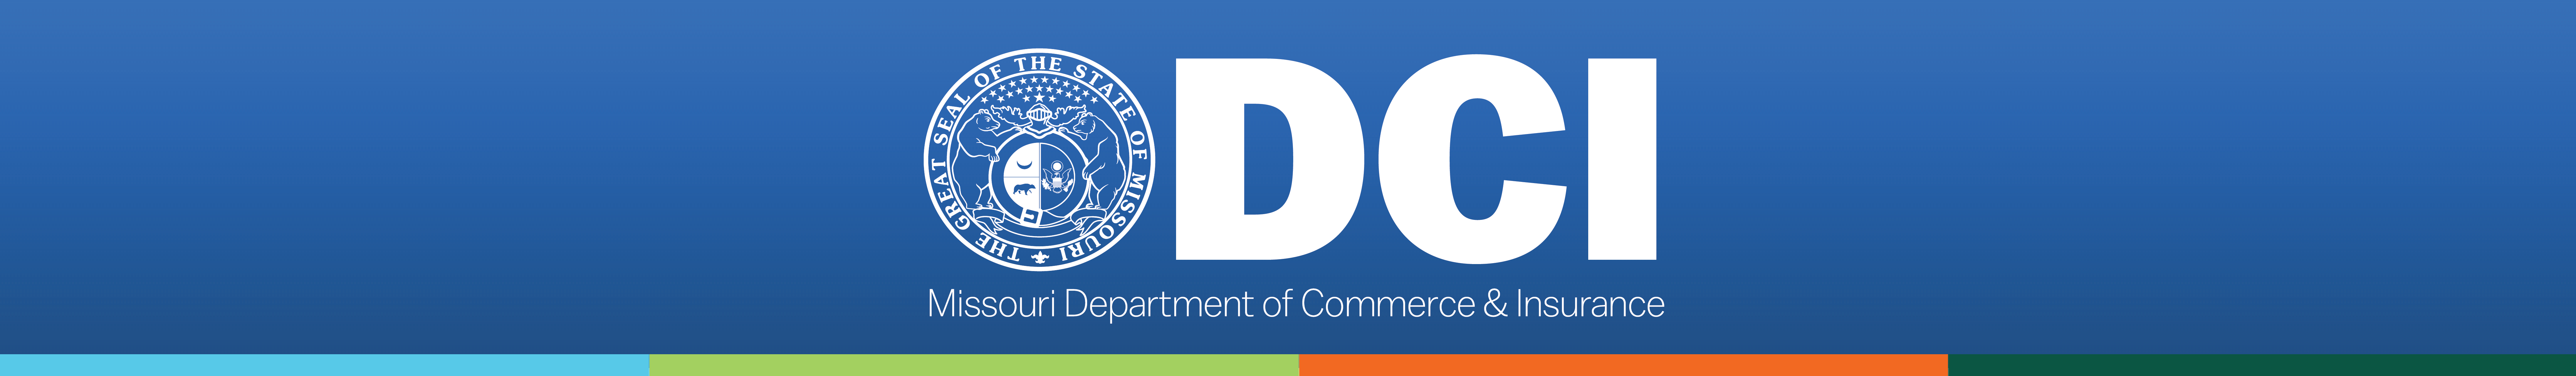 Missouri Department of Commerce and Insurance